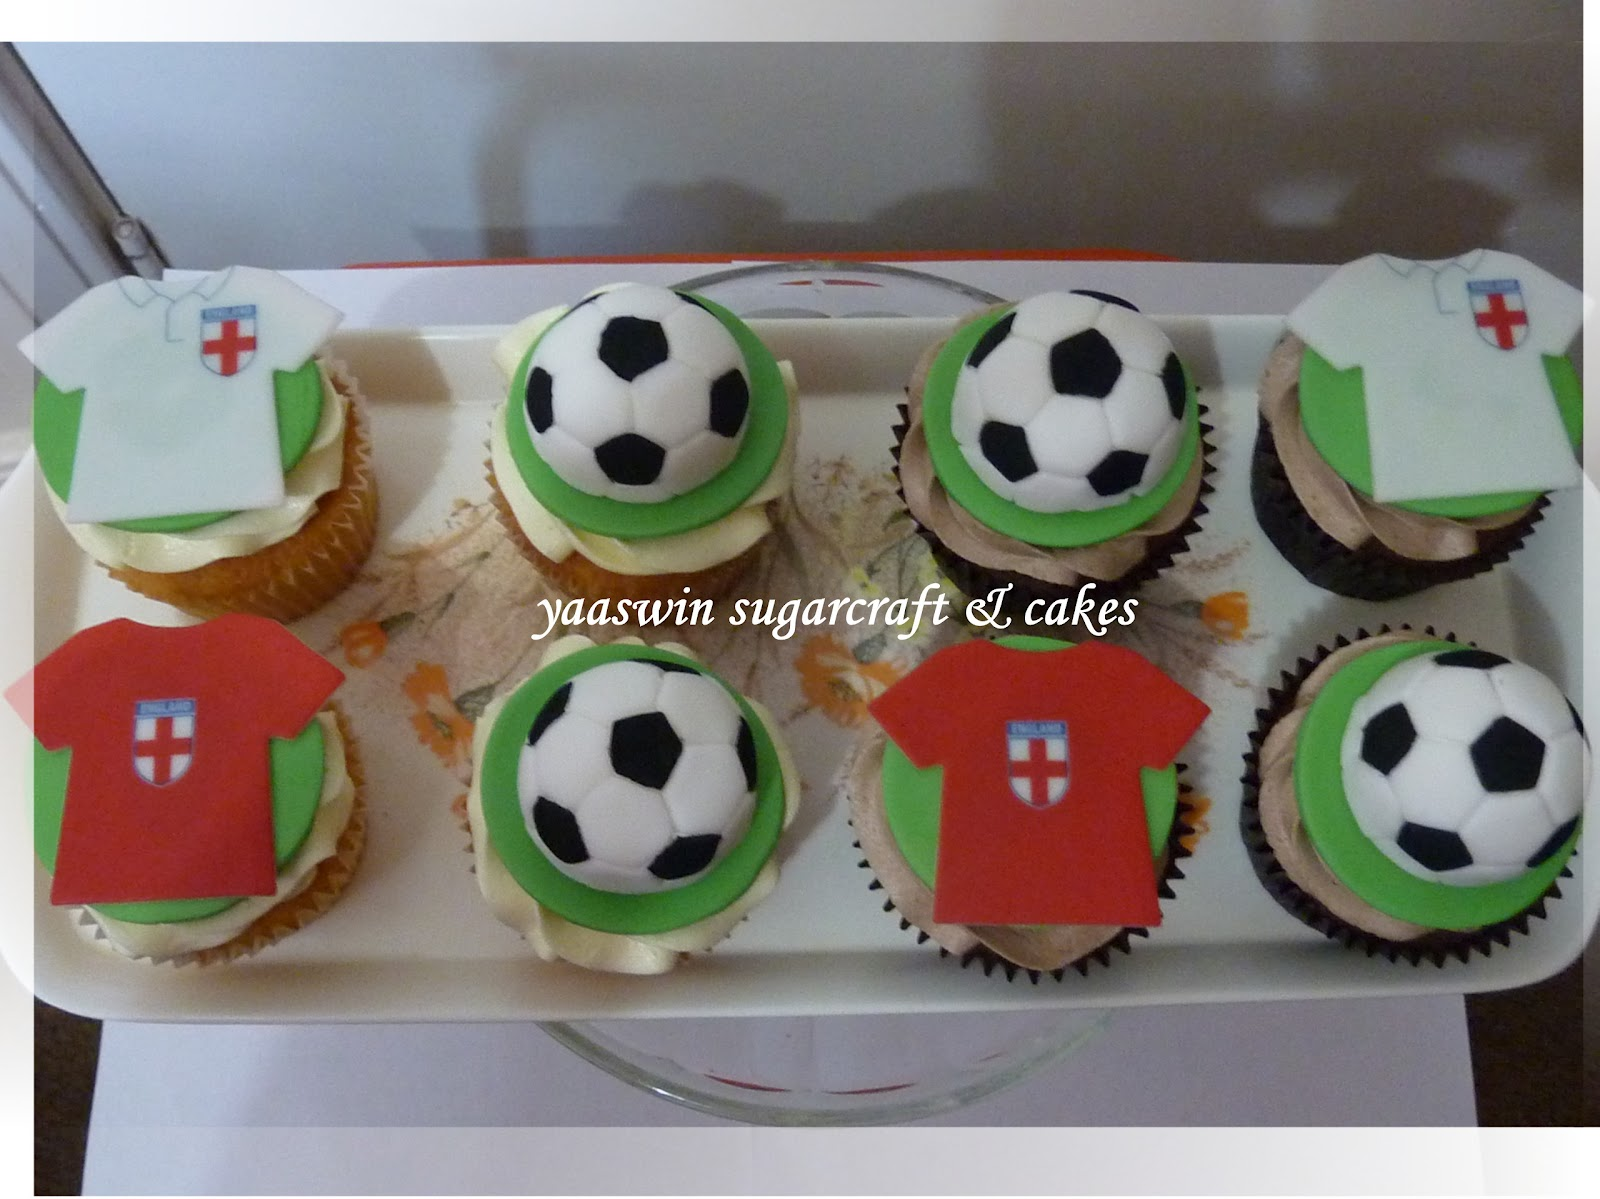 Football Themed Cakes http://yaaswinsugarcraft.blogspot.com/2012/05/football-themed-cupcakes.html